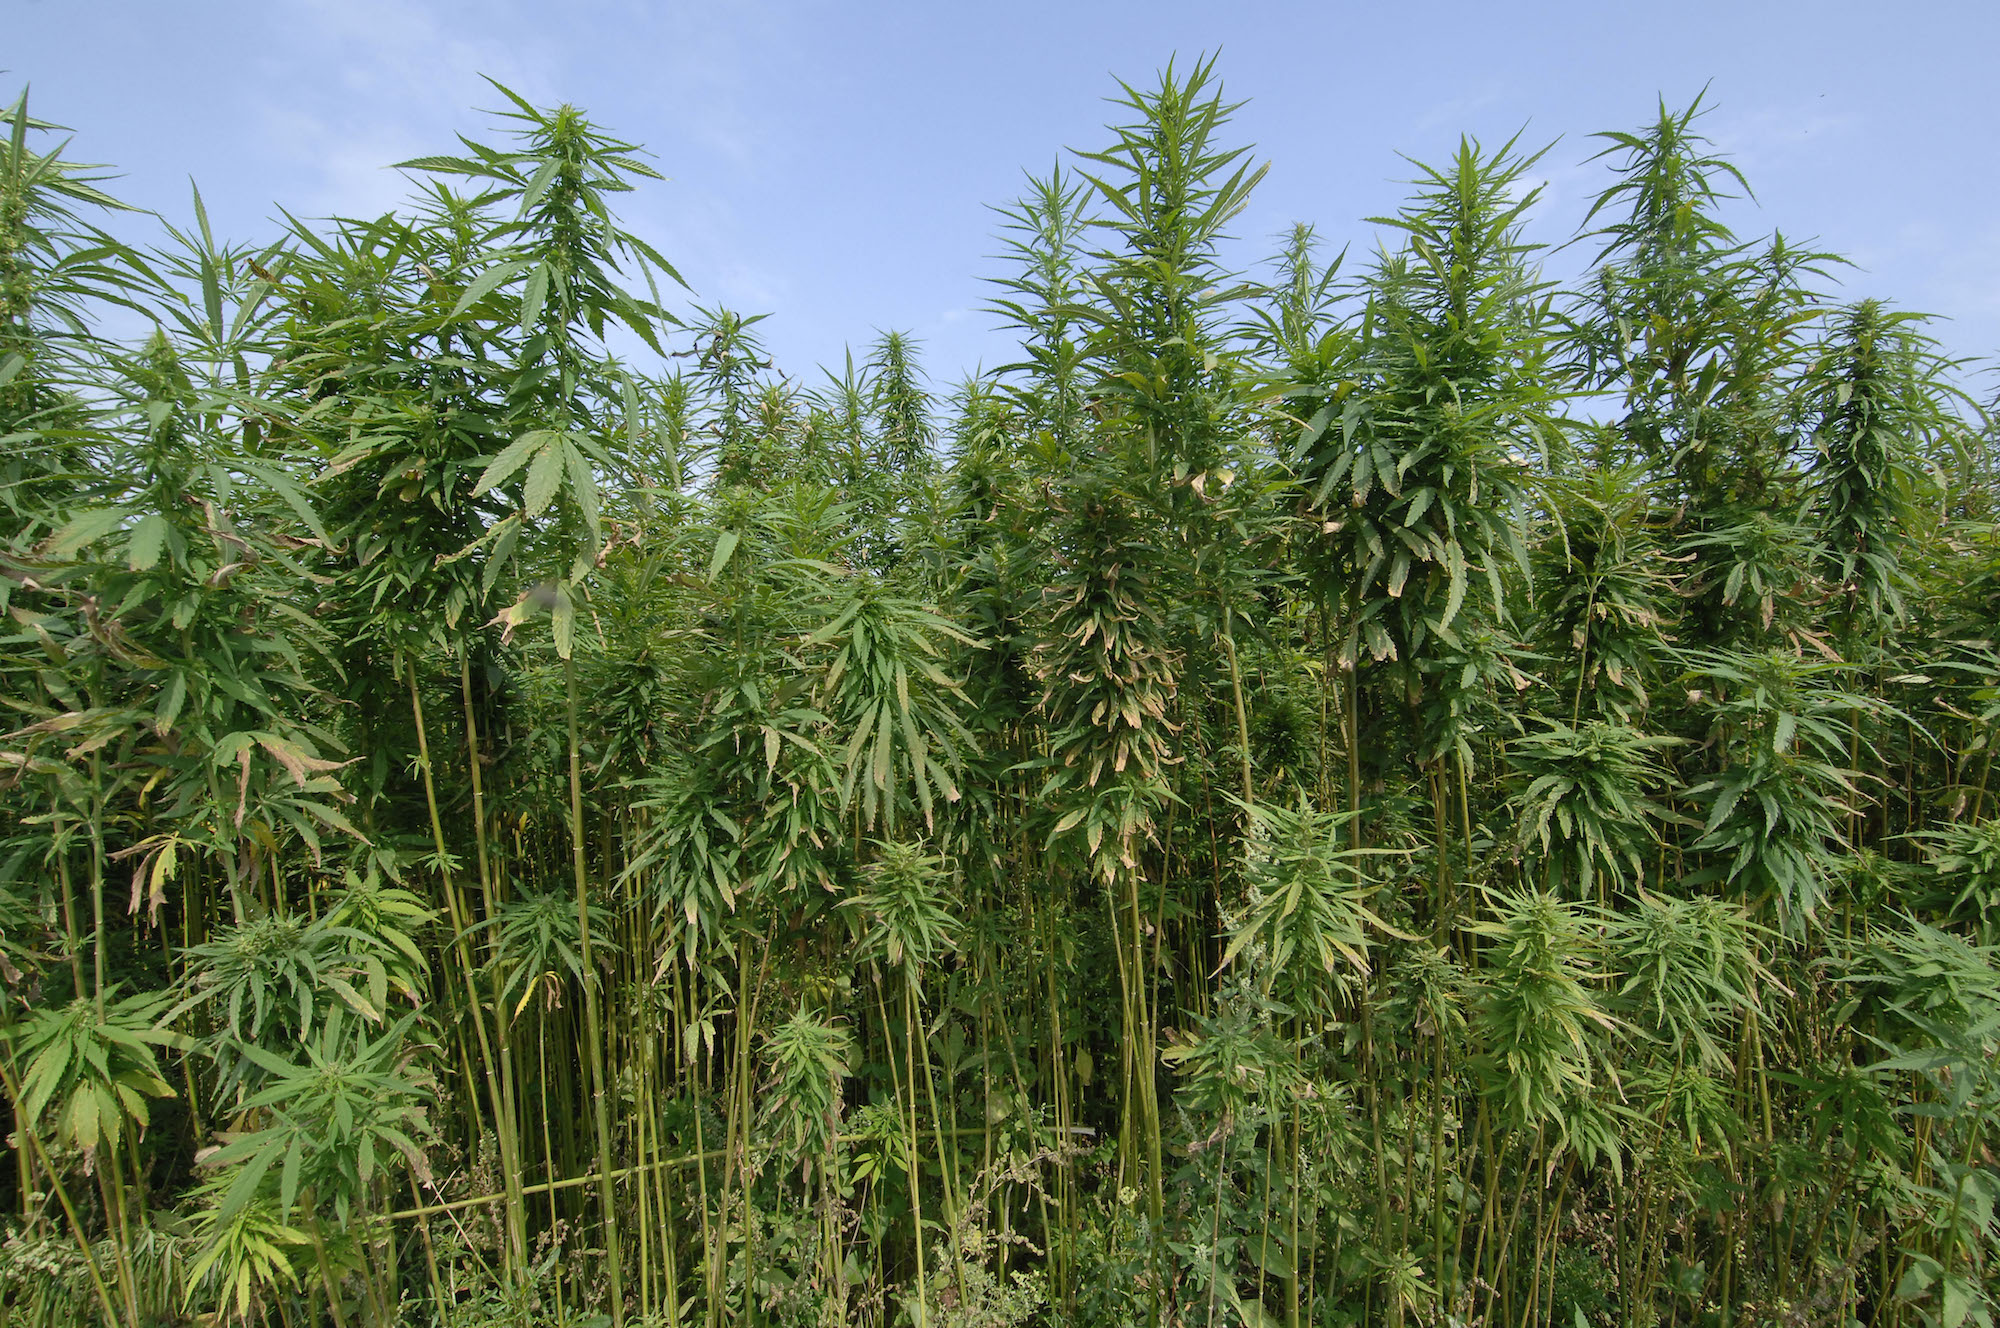 a photo of tall, green stalks of hemp against a blue sky